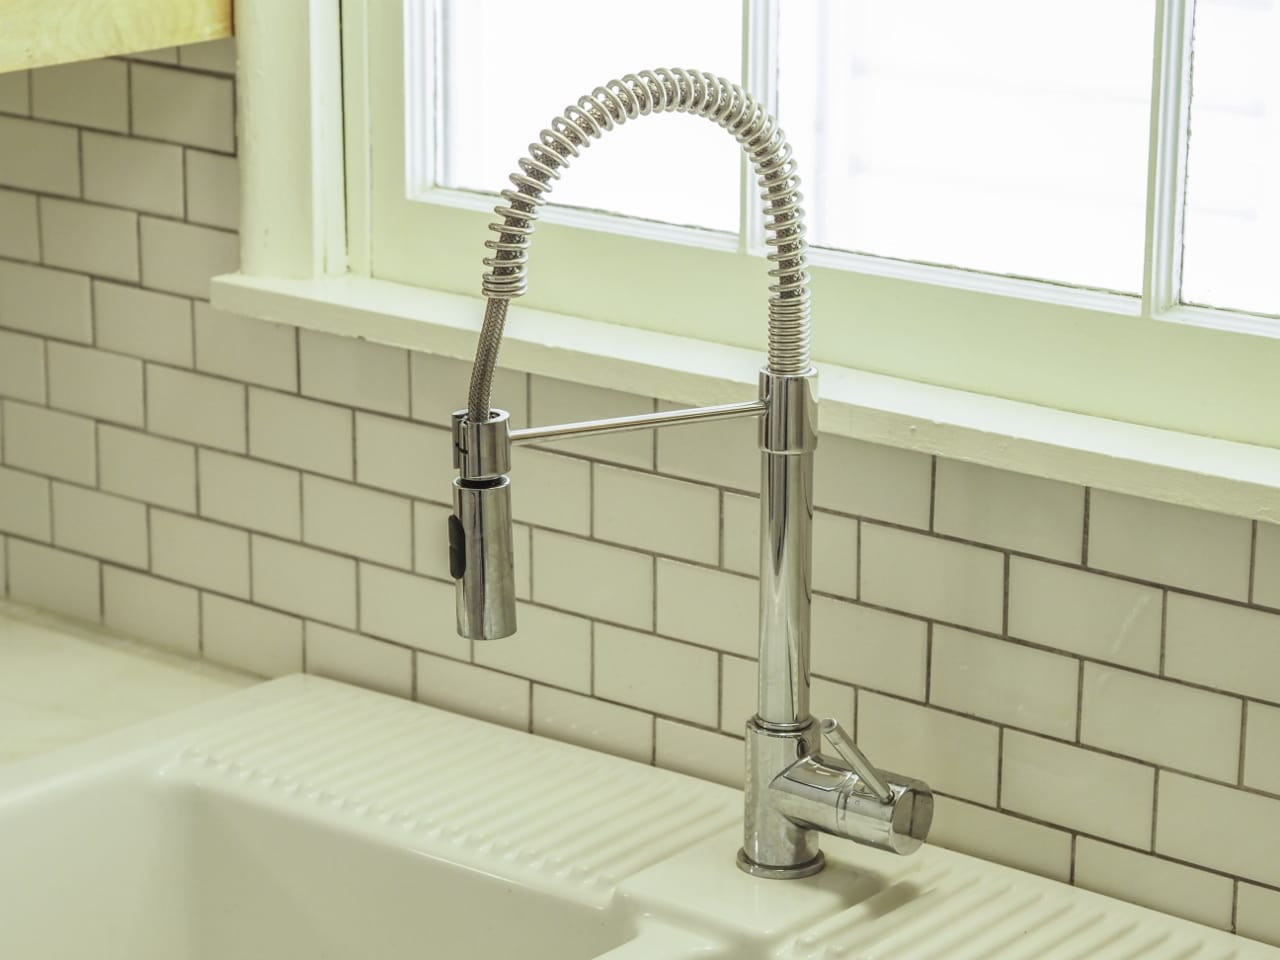 goose-neck style faucet